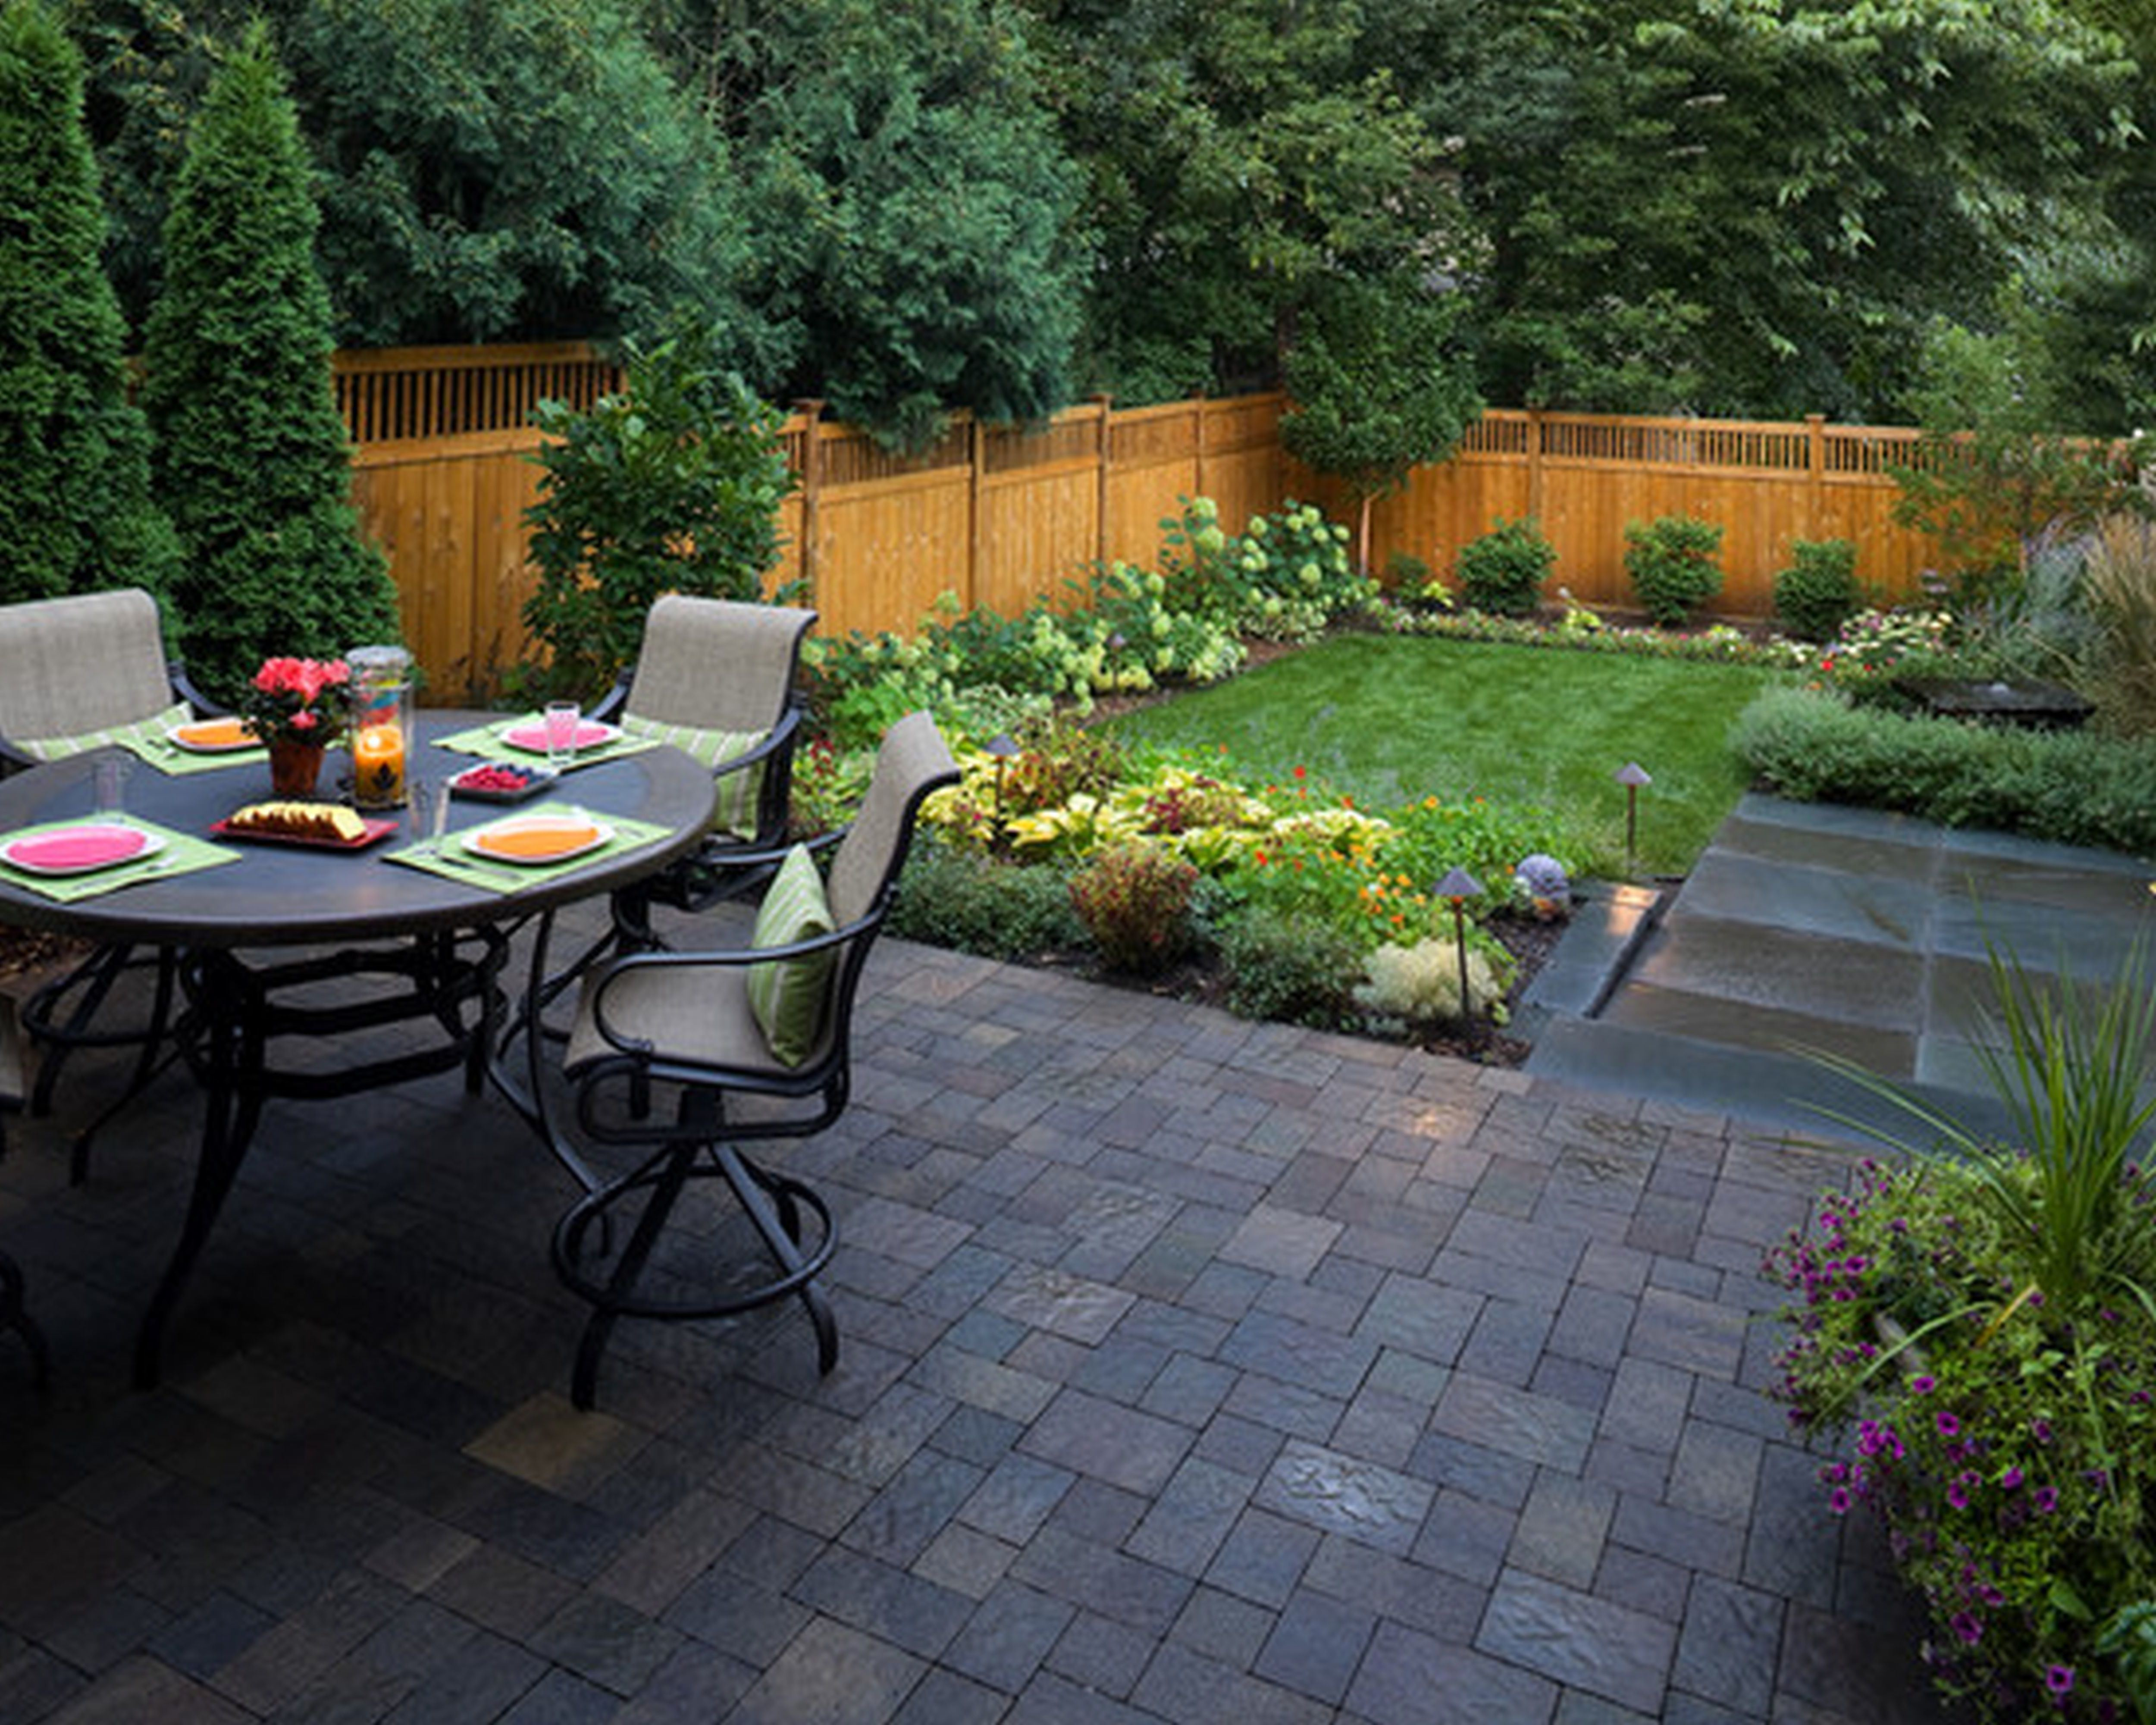 Small Backyard Landscaping Ideas With Pool Iwms Landscaping Ideas inside Landscaping Ideas For Small Backyards